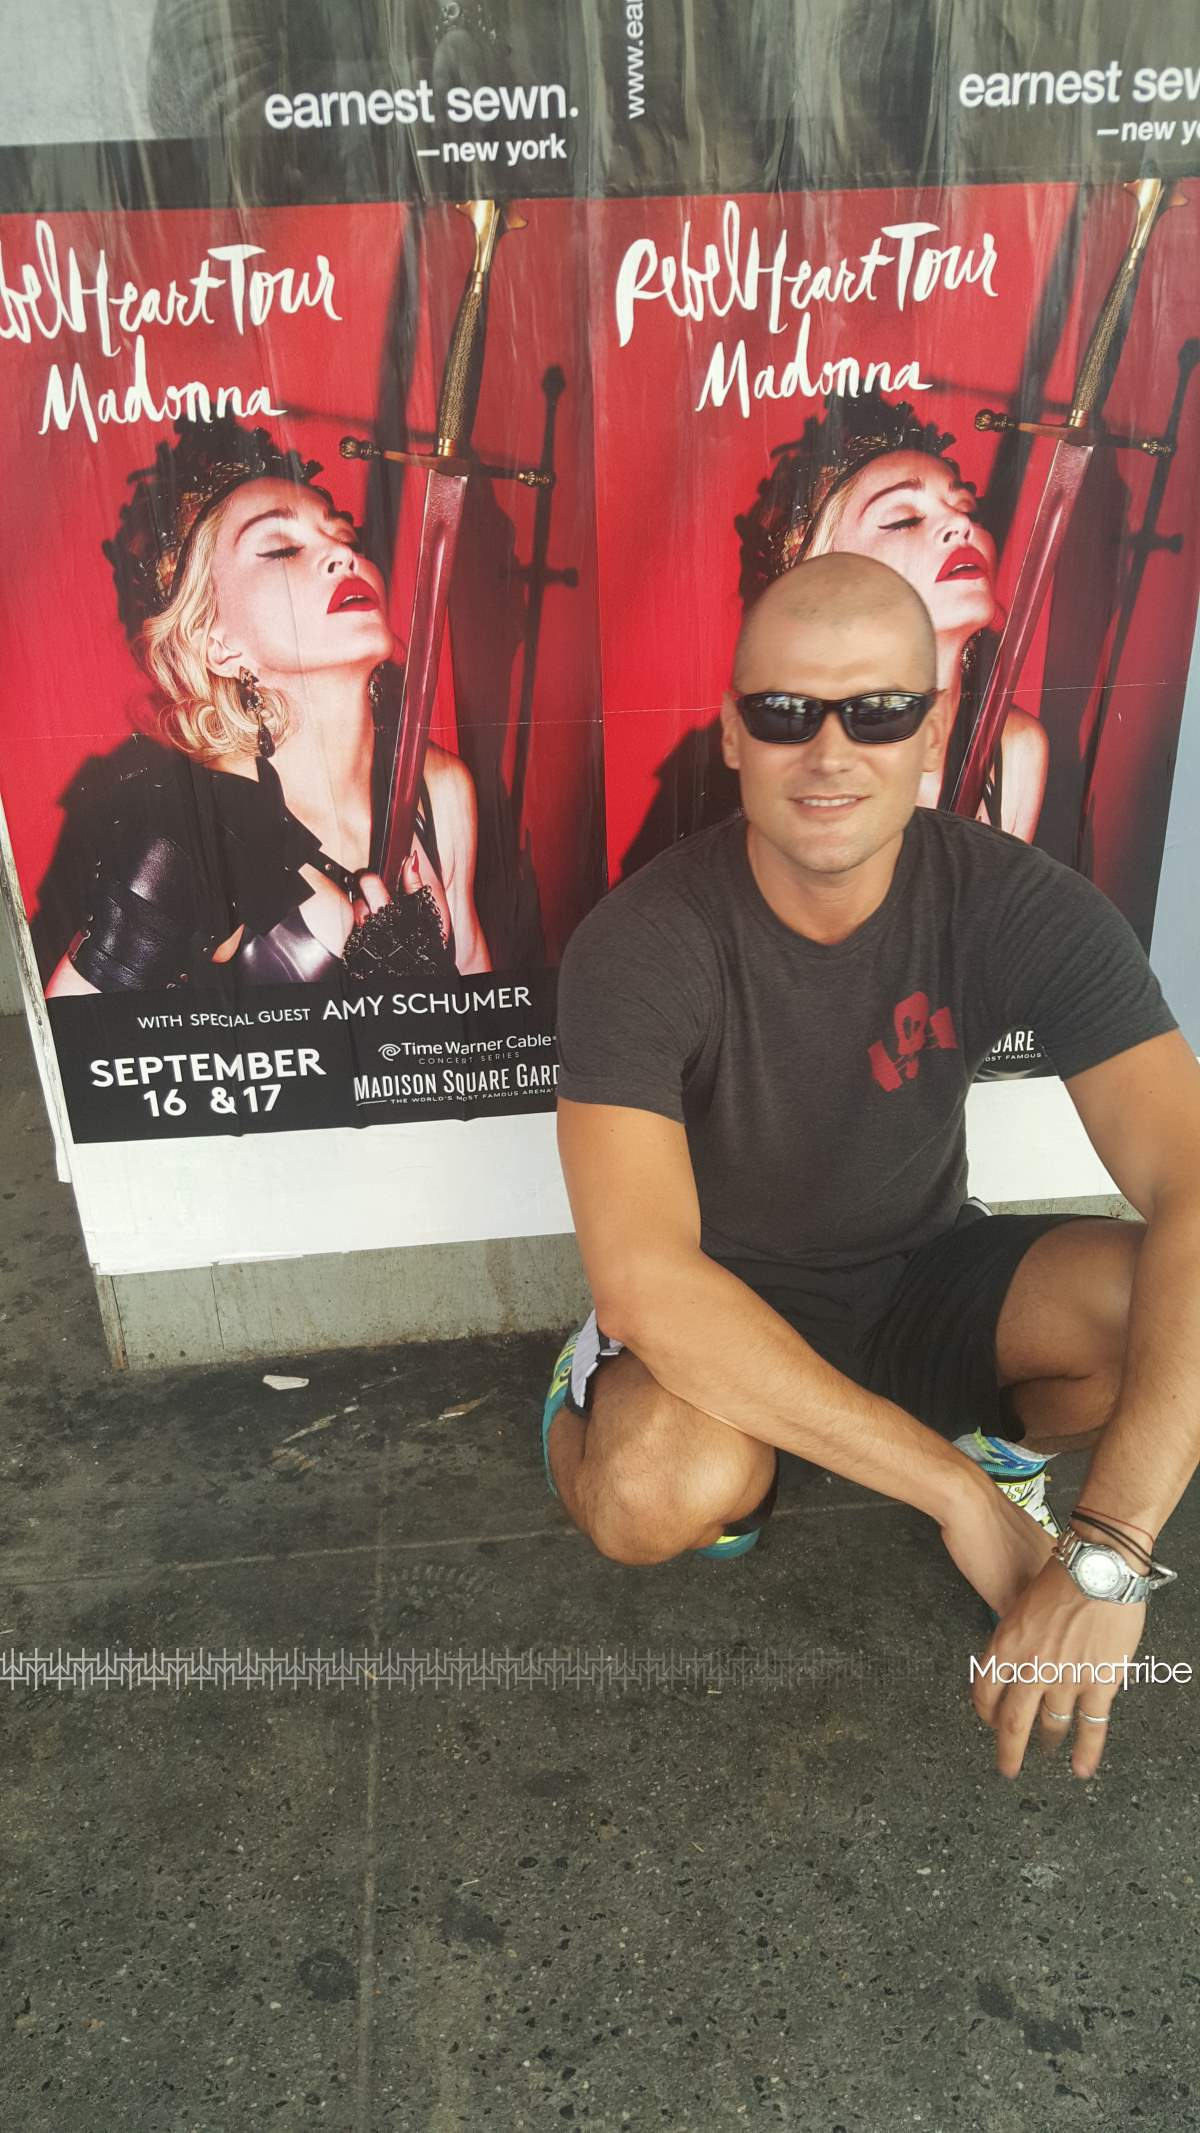 Rebel Heart Tour posters in Chelsea